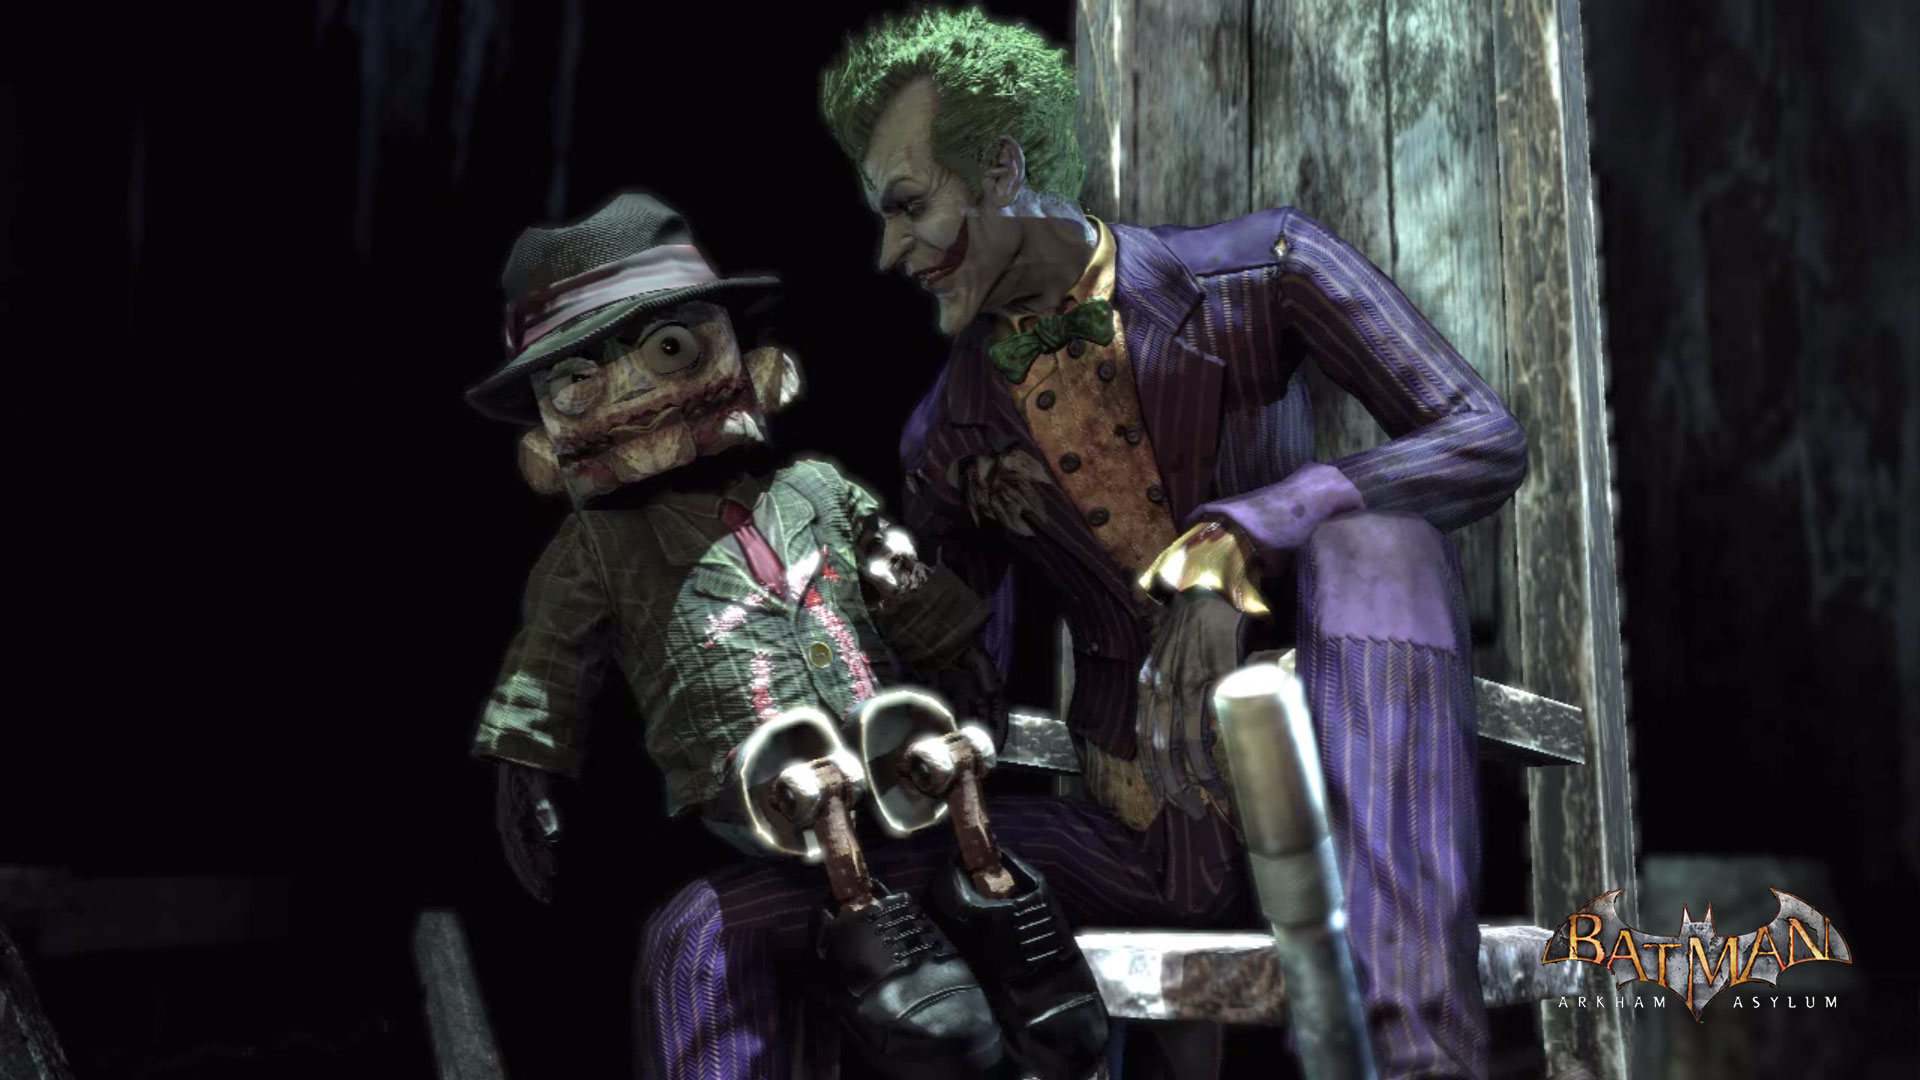 Batman Arkham Asylum   Joker Scarface puppet   1920x1080   Full HD 1920x1080